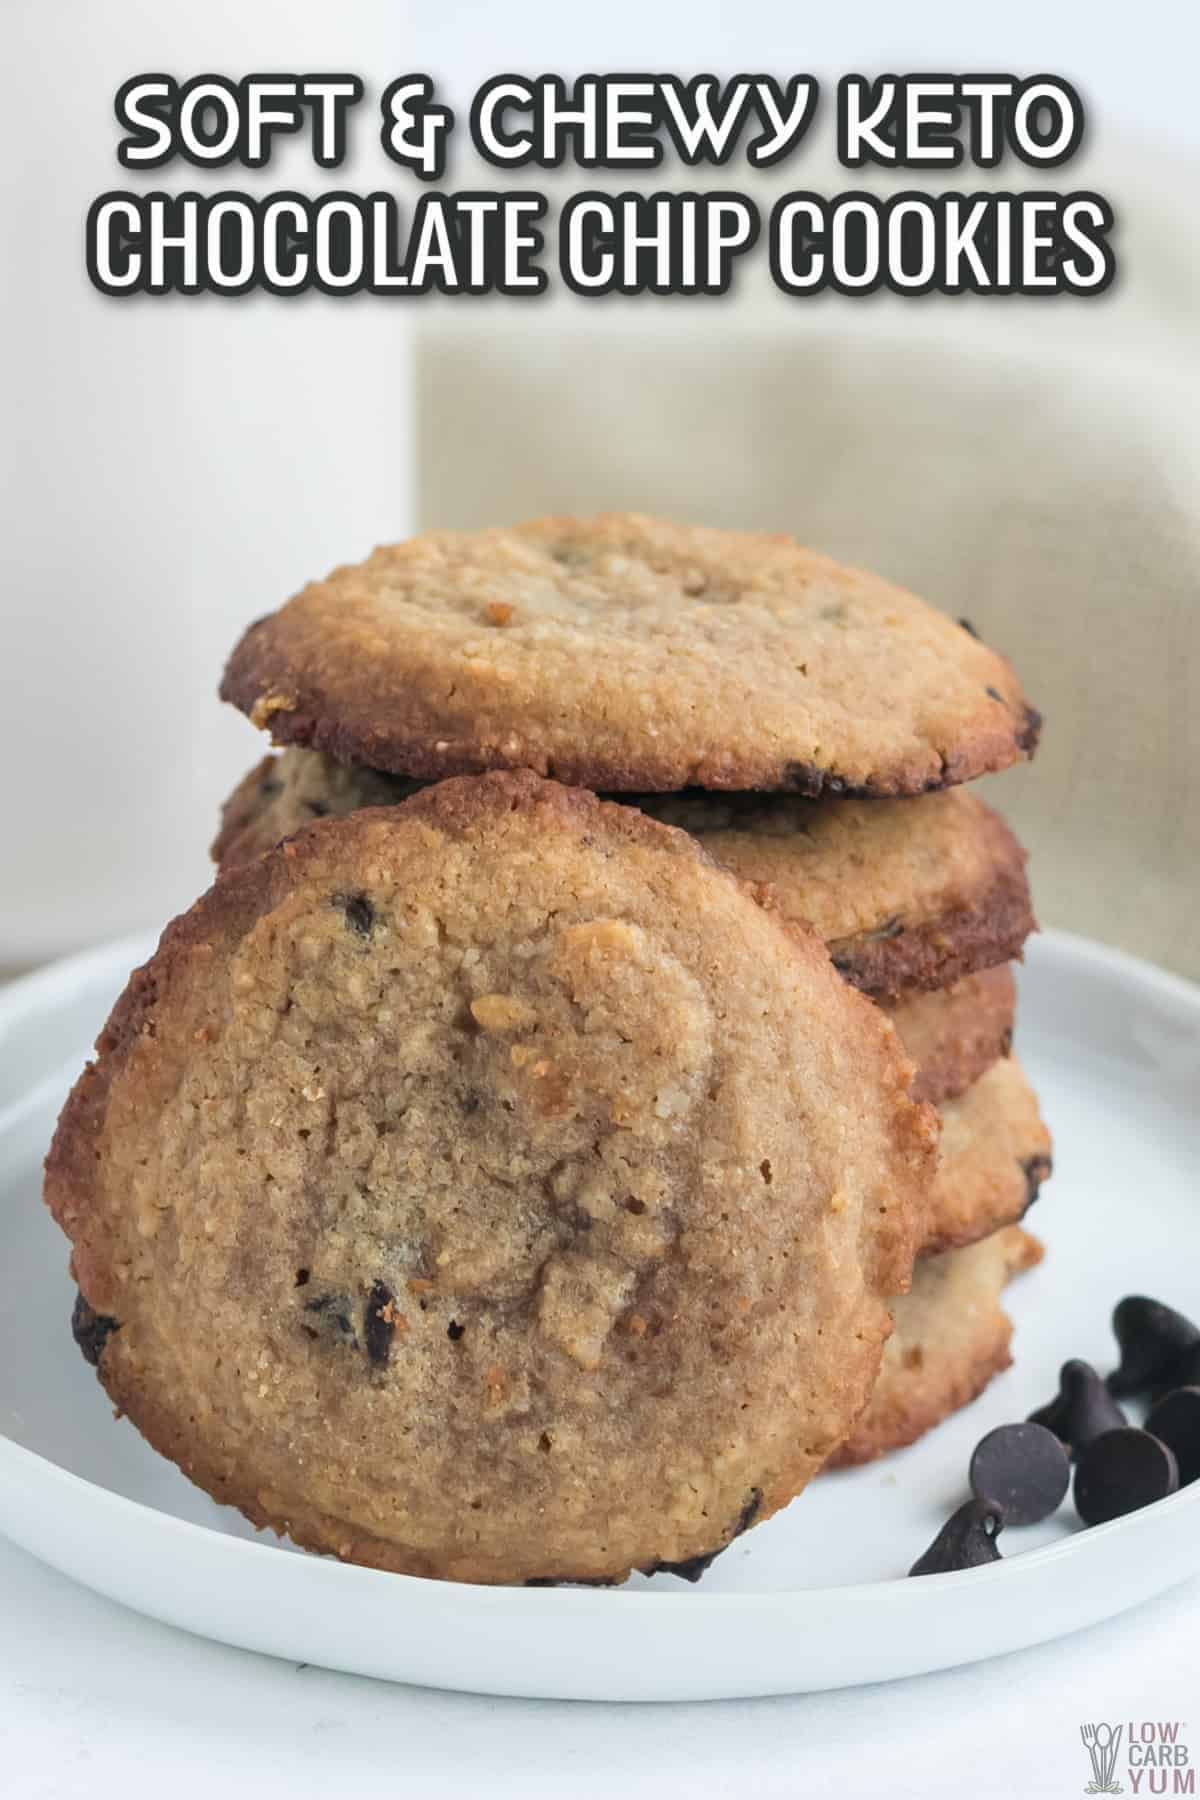 chewy keto chocolate chip cookies recipe cover image